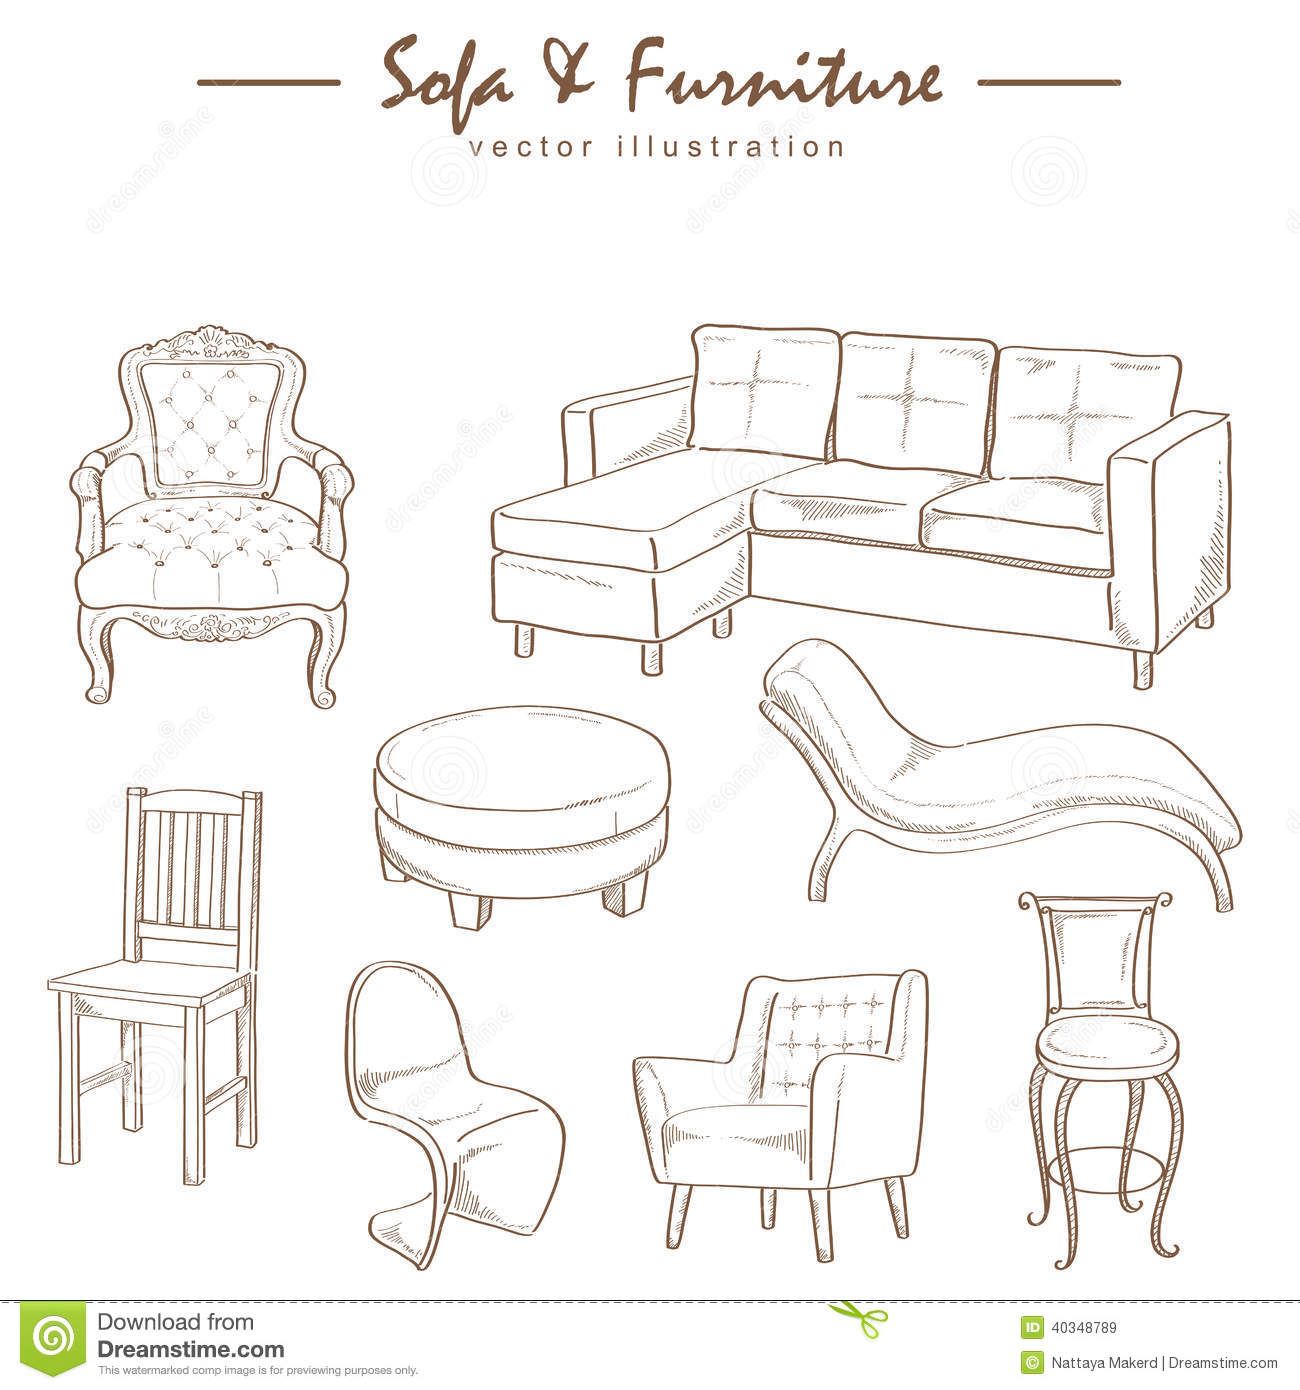 Royalty Bedroom Furniture Furniture Collection Sketch Drawing Vector Stock Vector